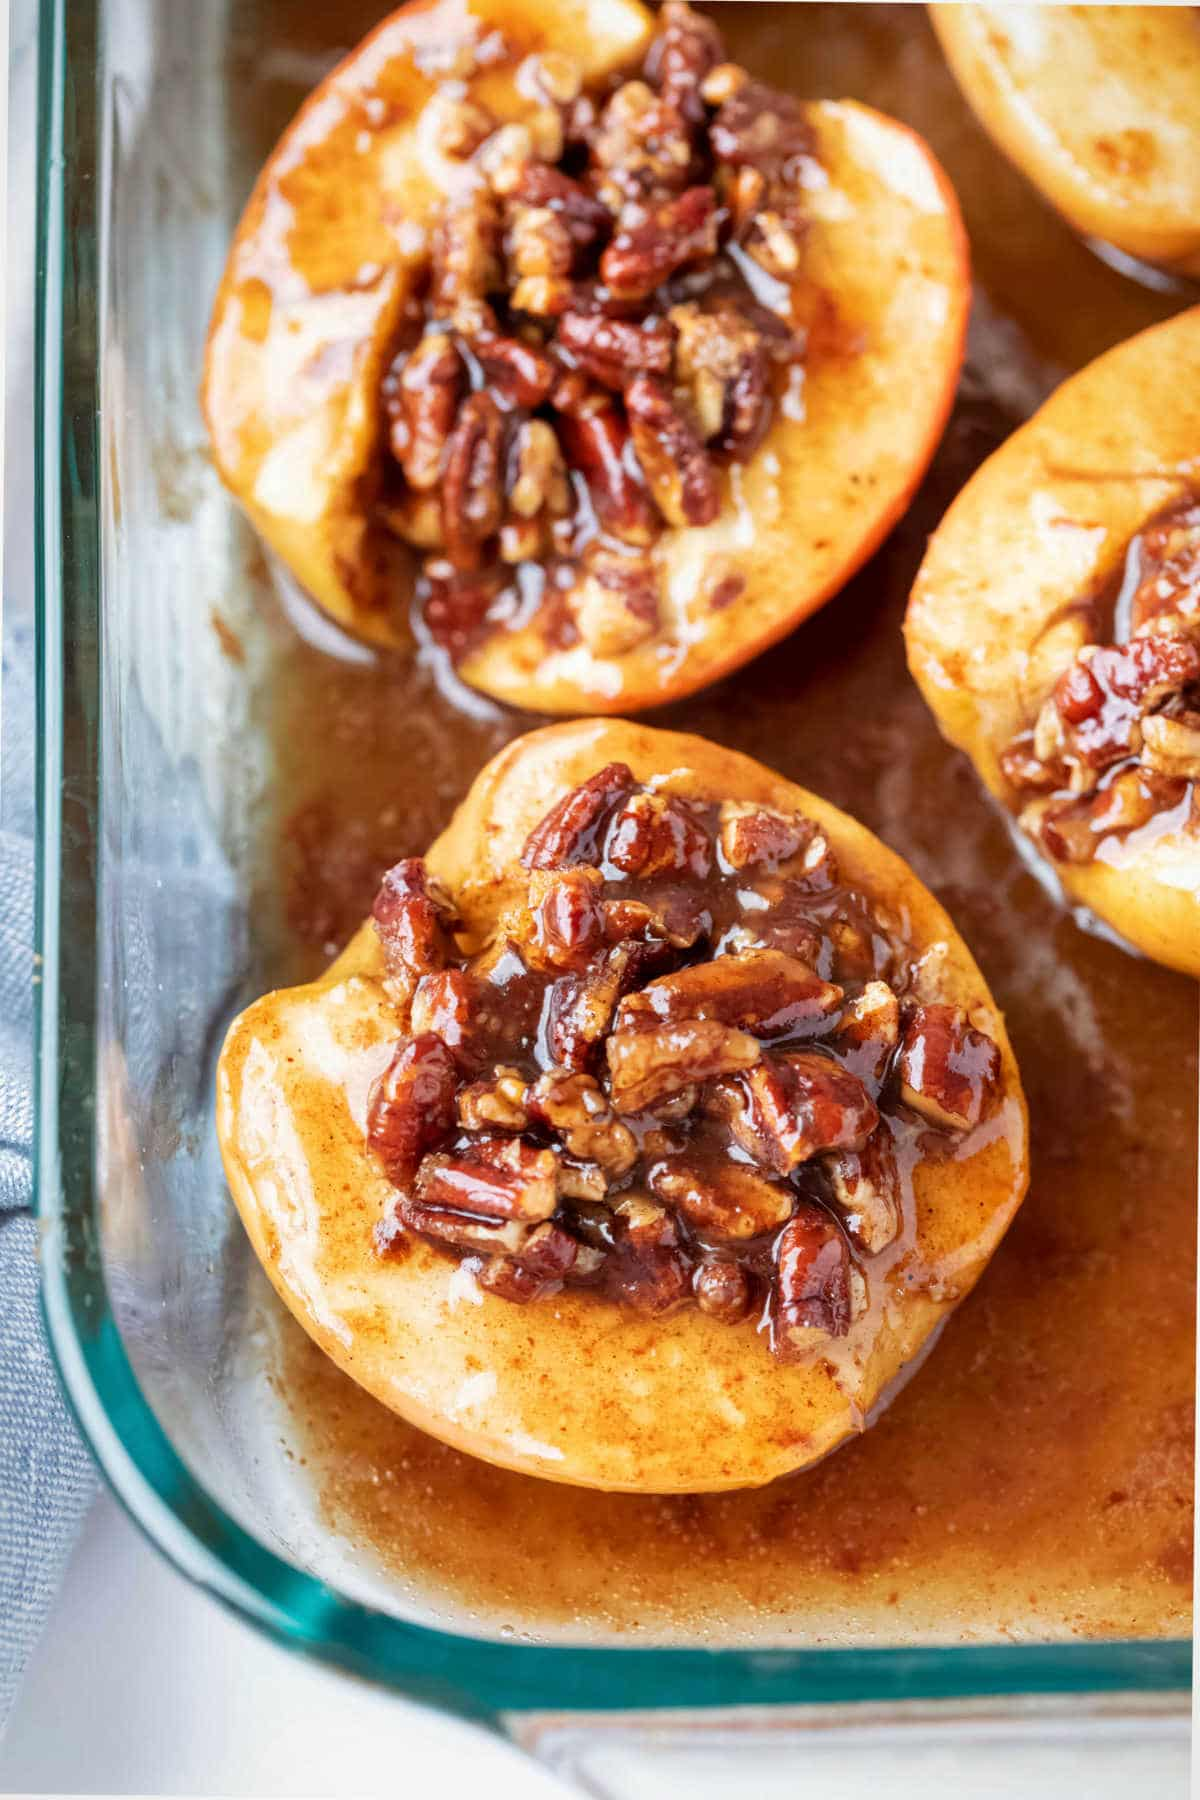 Baked apples in a glass baking dish.